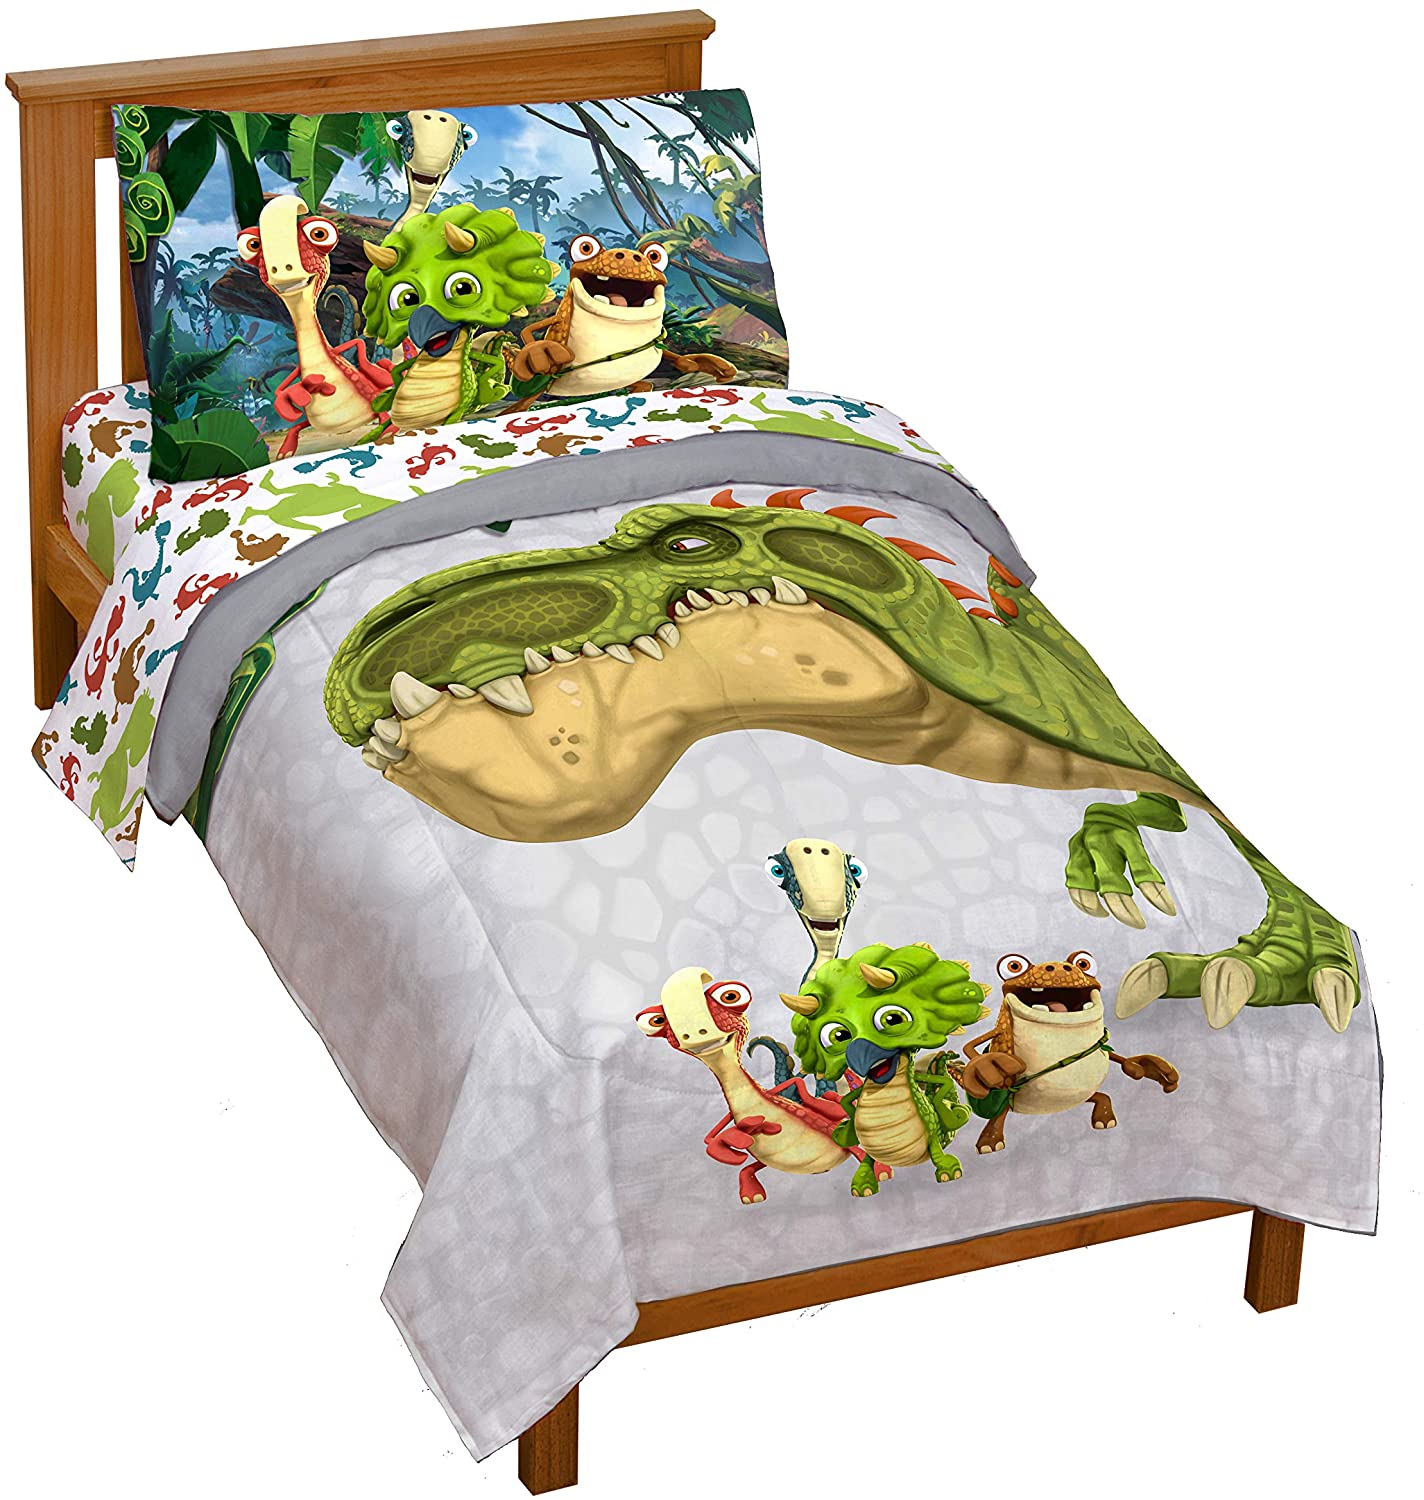 Amazon Com Jay Franco Gigantosaurus 4 Piece Toddler Bed Set Bed Set Includes Toddler Size Comforter Sheet Set Bedding Features Dinosaur Rocky Bill Tiny Mazu Official Gigantosaurus Product Home Kitchen